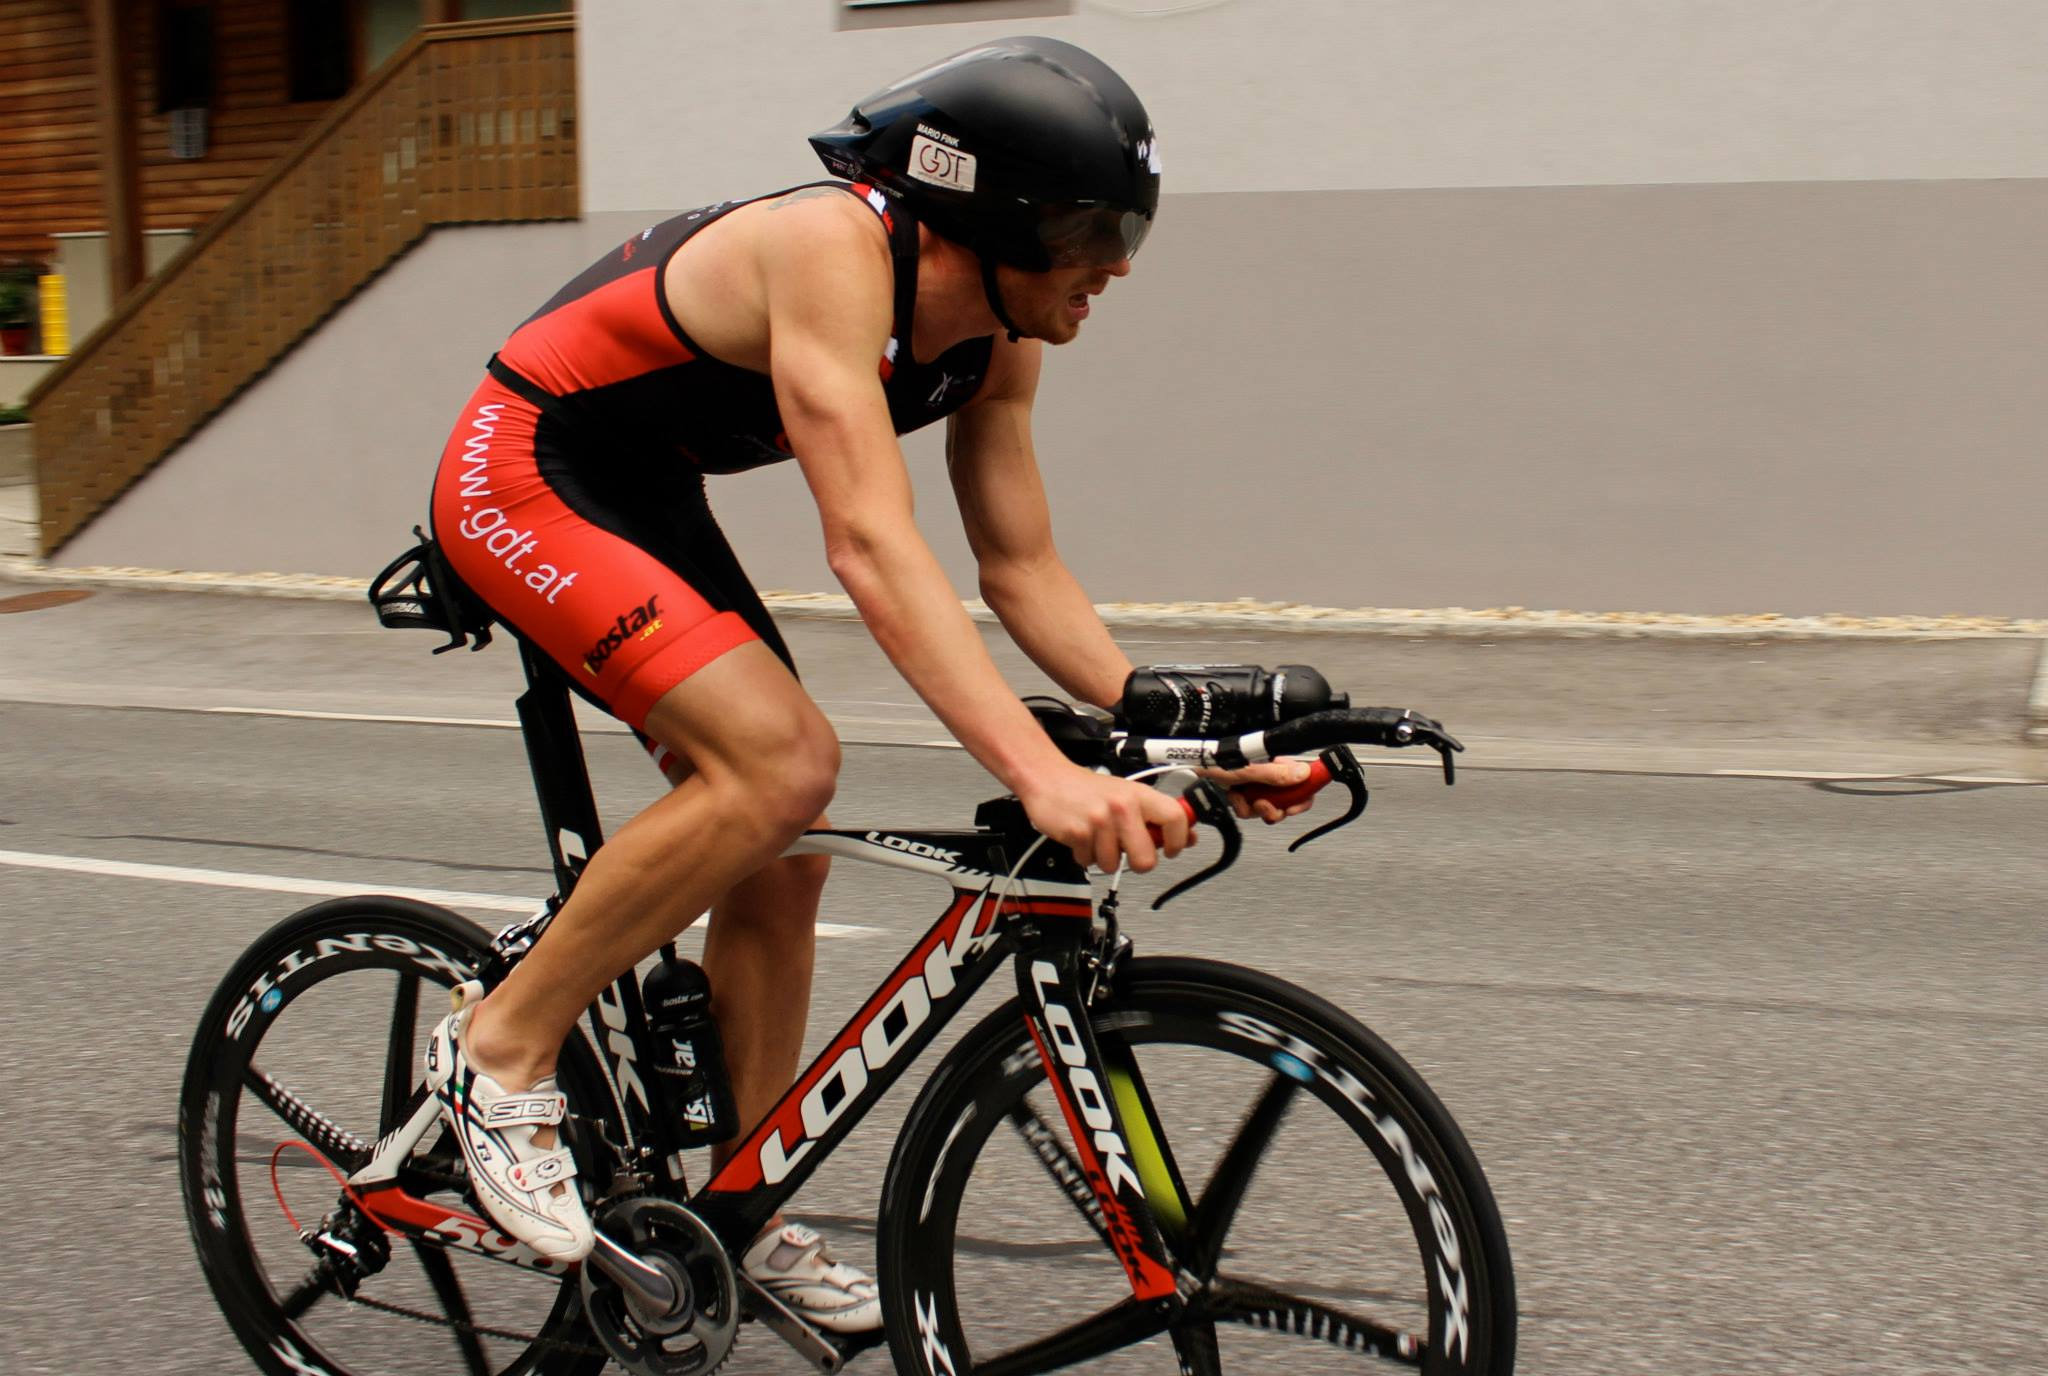 10 Ironman Radrouten für Triathleten